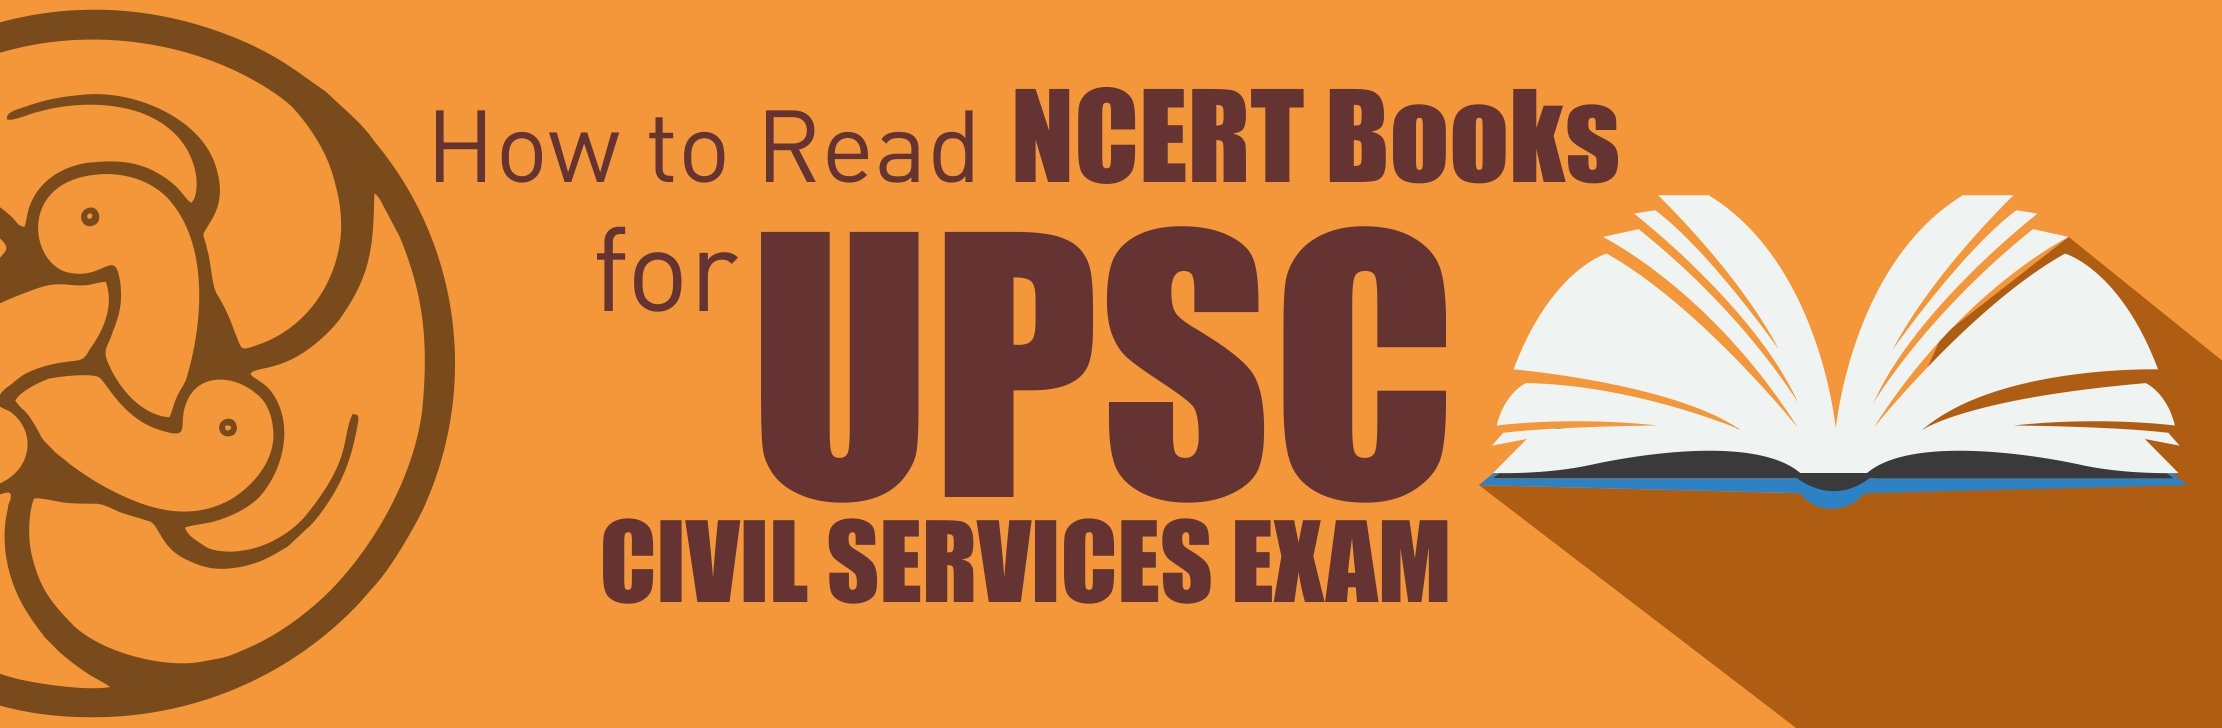 best essay book for civil services